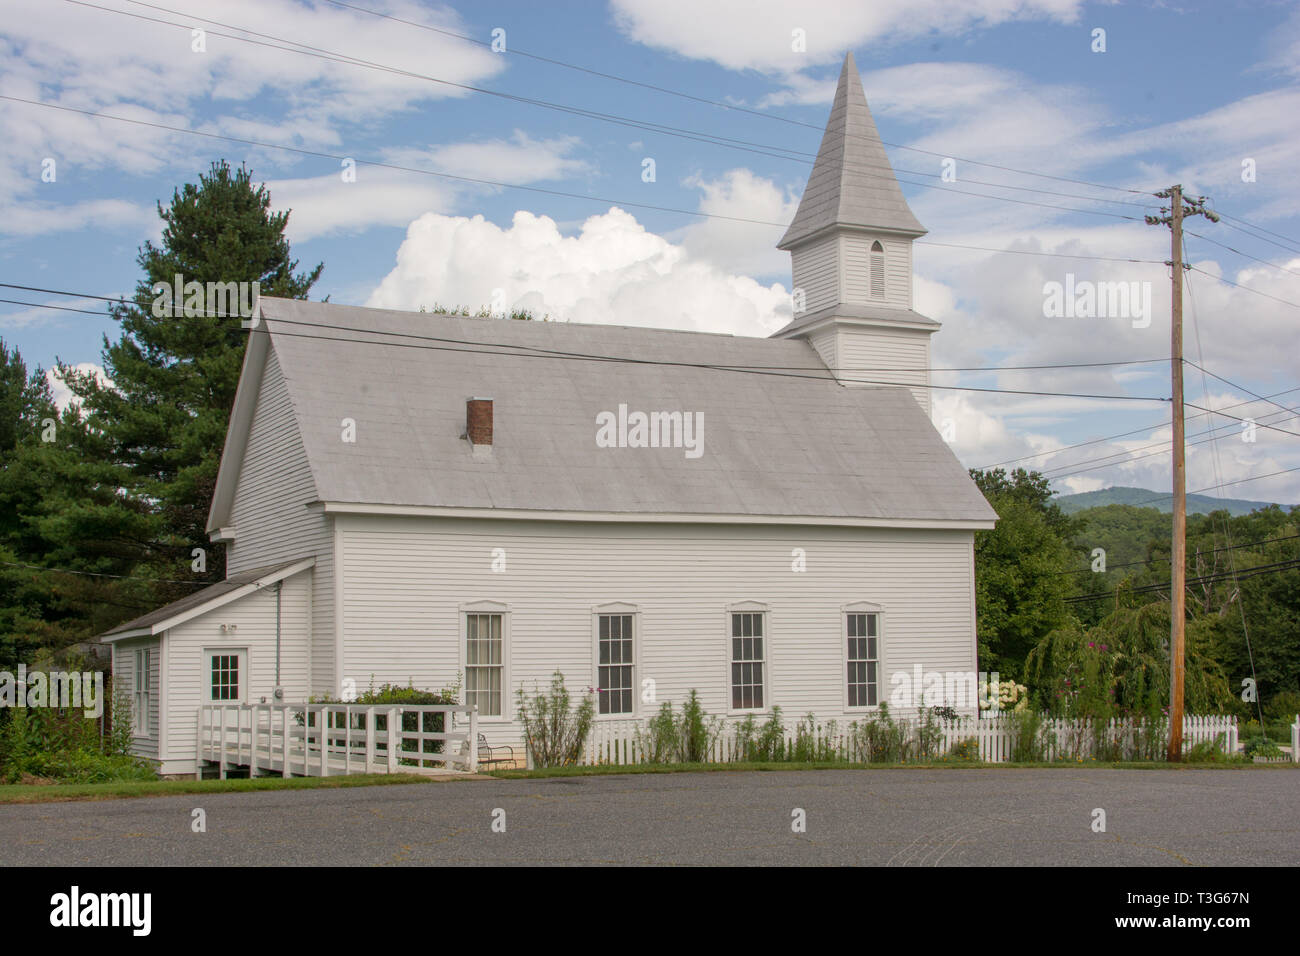 The Webster Methodist Church has been added to the National Register of Historic Places. It sits on Main Street, next to Old Rock School, in Webster. Stock Photo